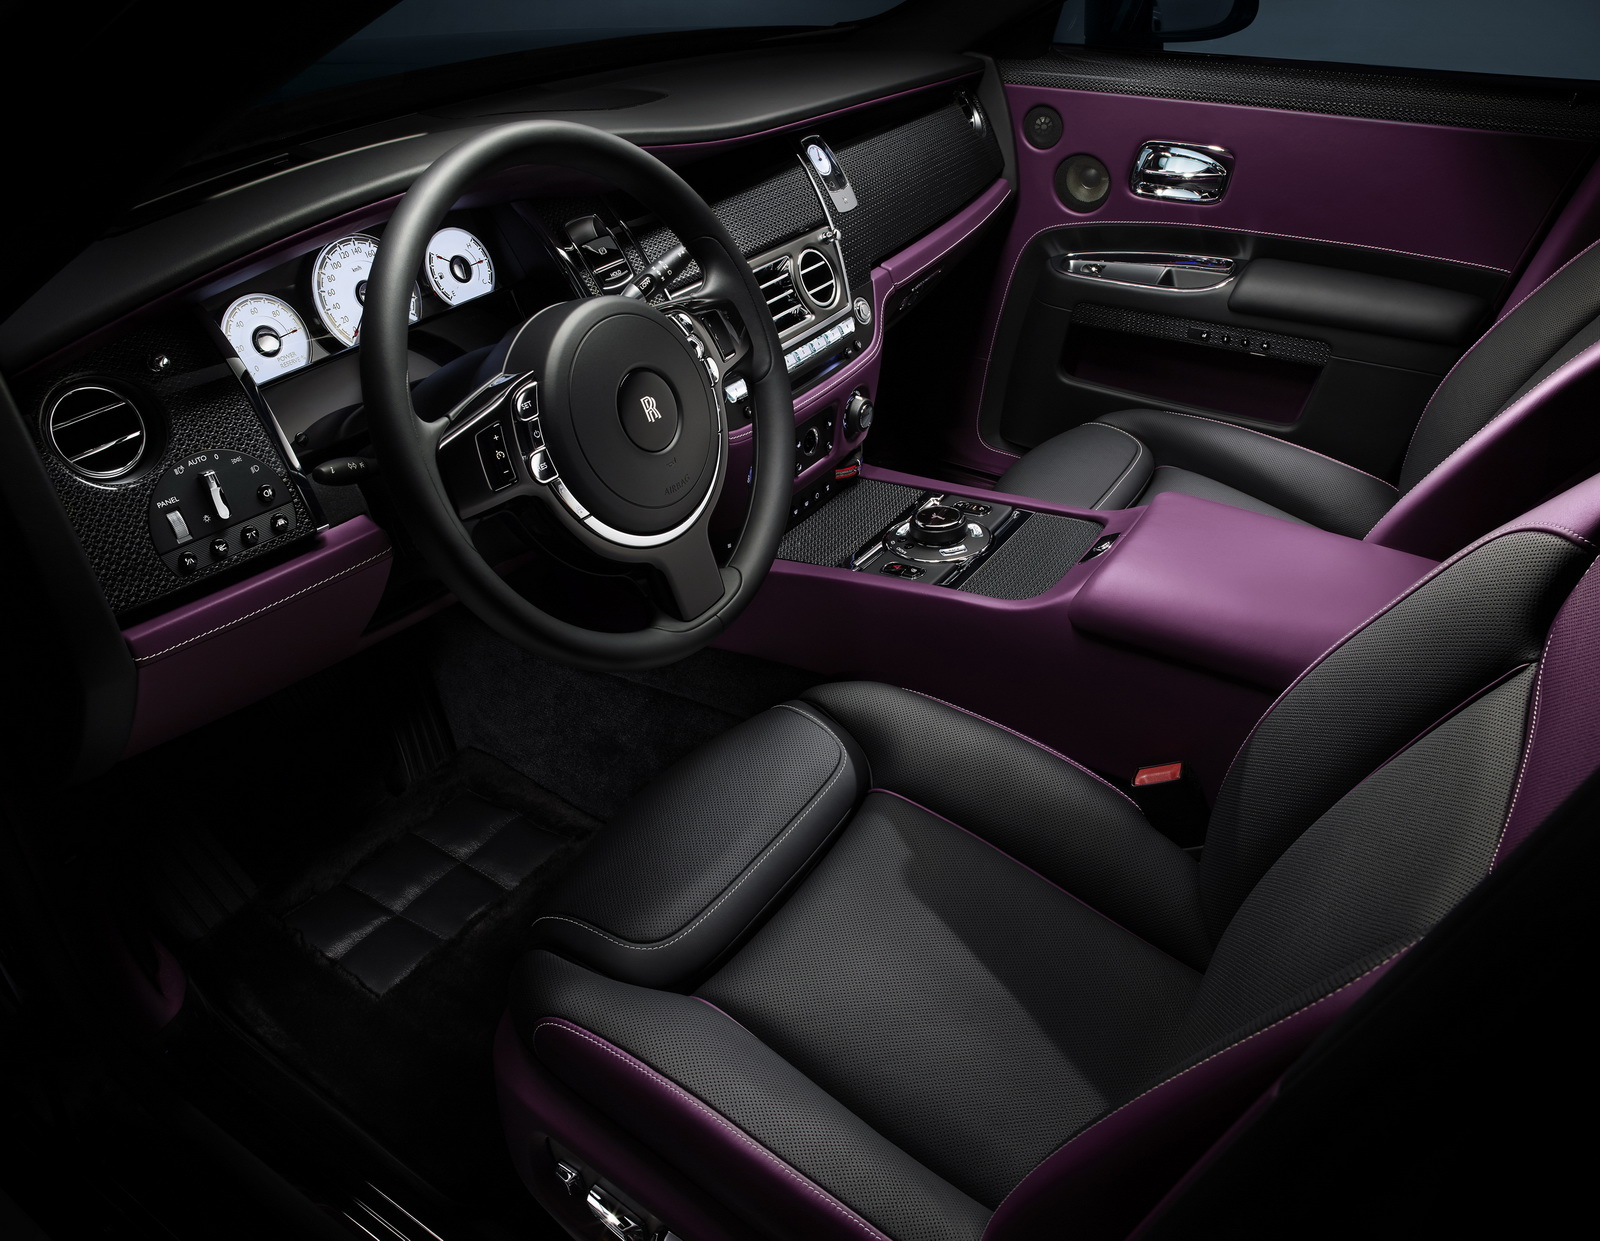 Rolls royce cars news black badge models targeting for Rolls royce ghost interior